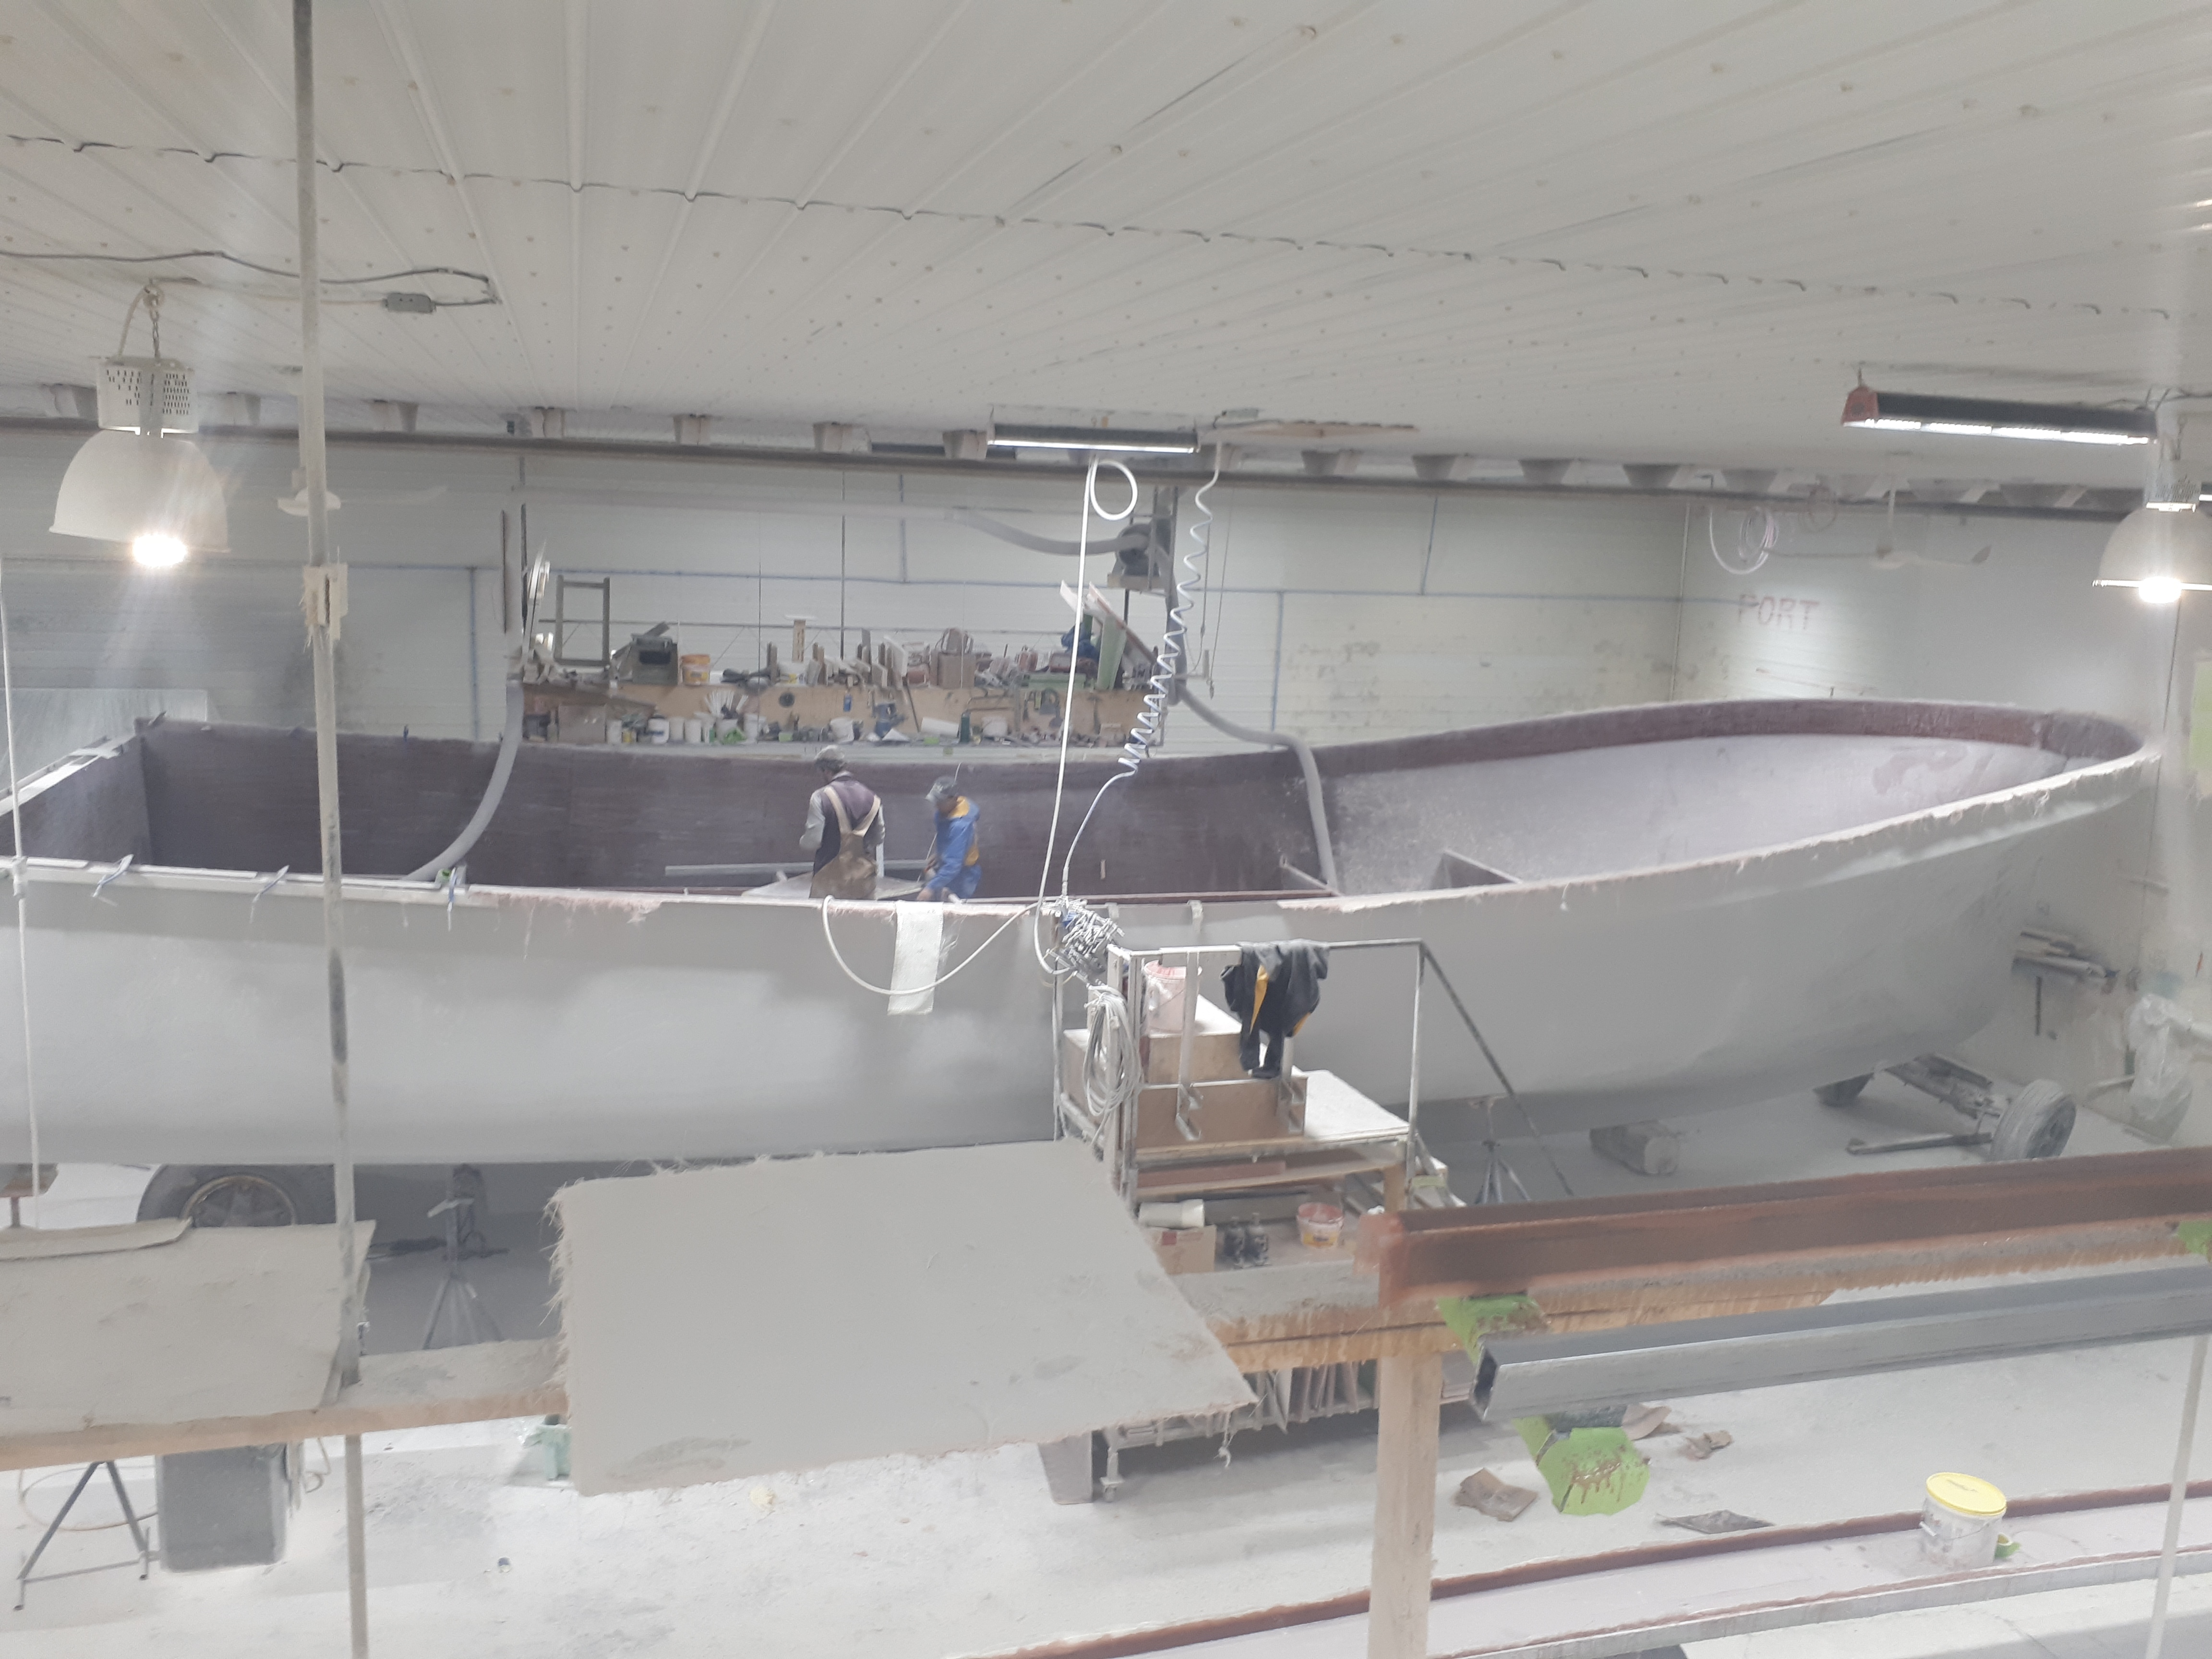 After the Fibreglas boat is pulled from the mould, staff begin installing floors and cabinets. (Submitted by Doucette's Boat Building)